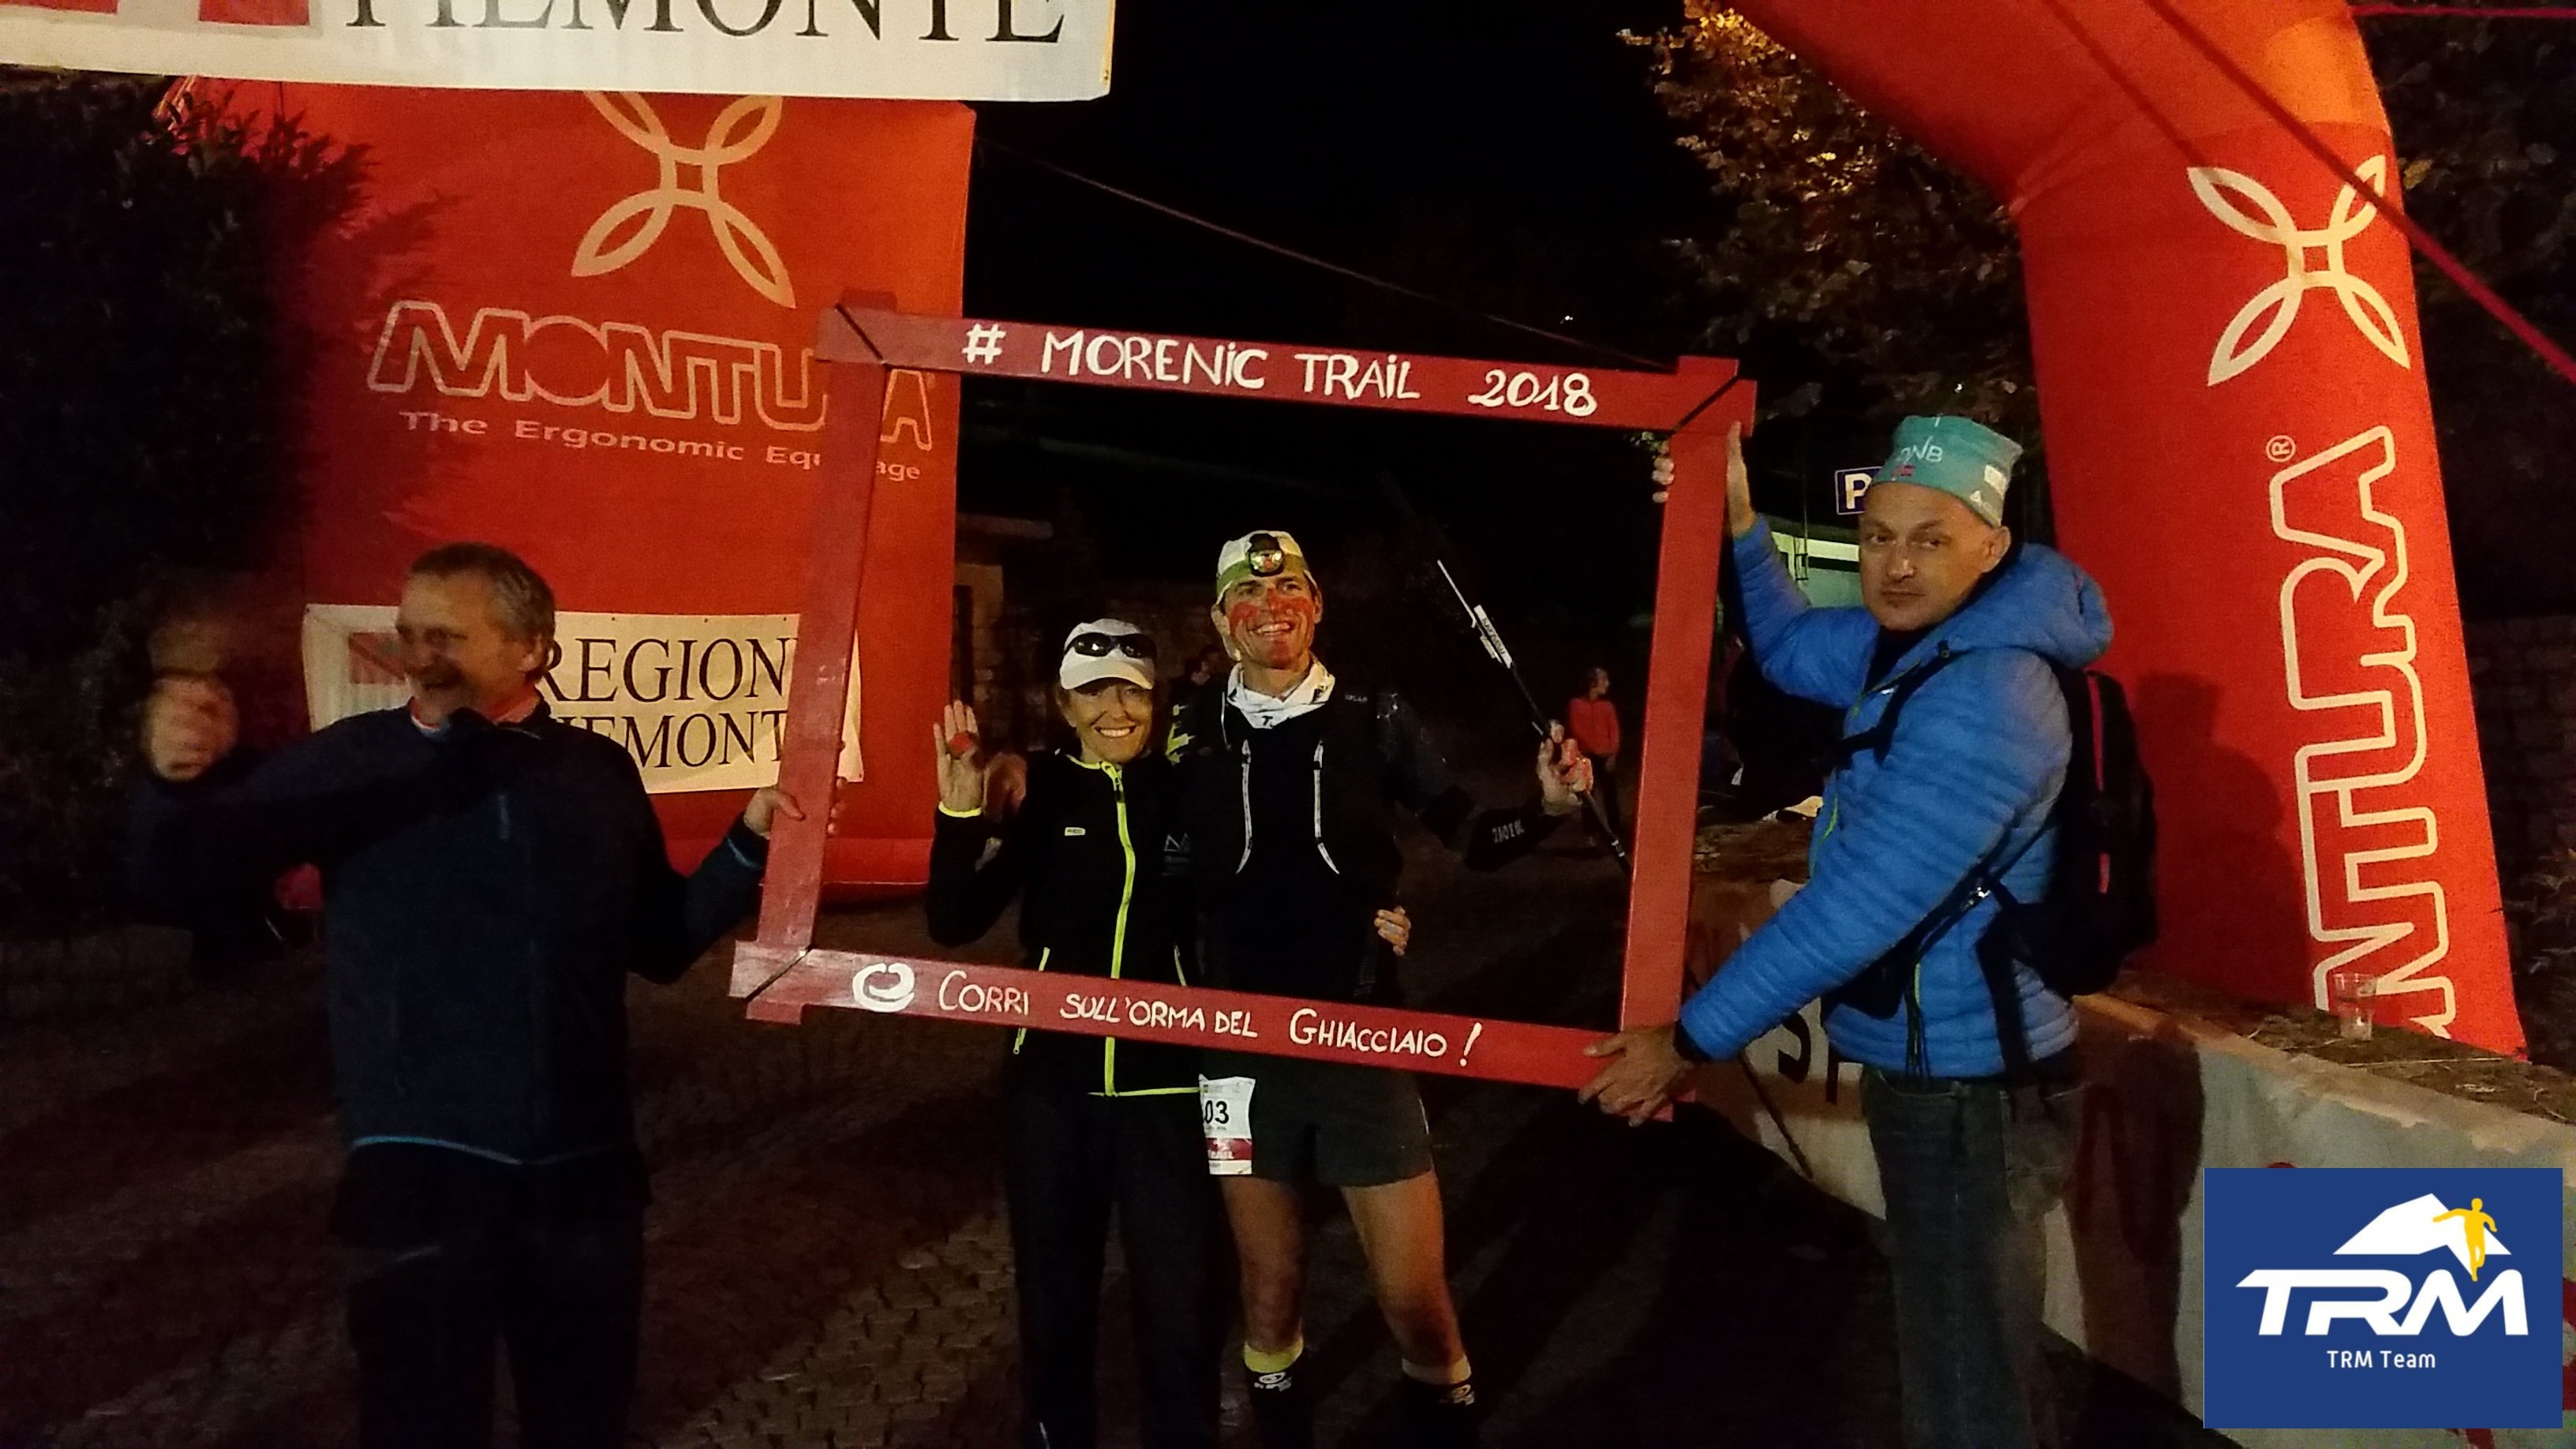 TRM TEAM ON THE PODIUM AT THE MORENIC ULTRA TRAIL